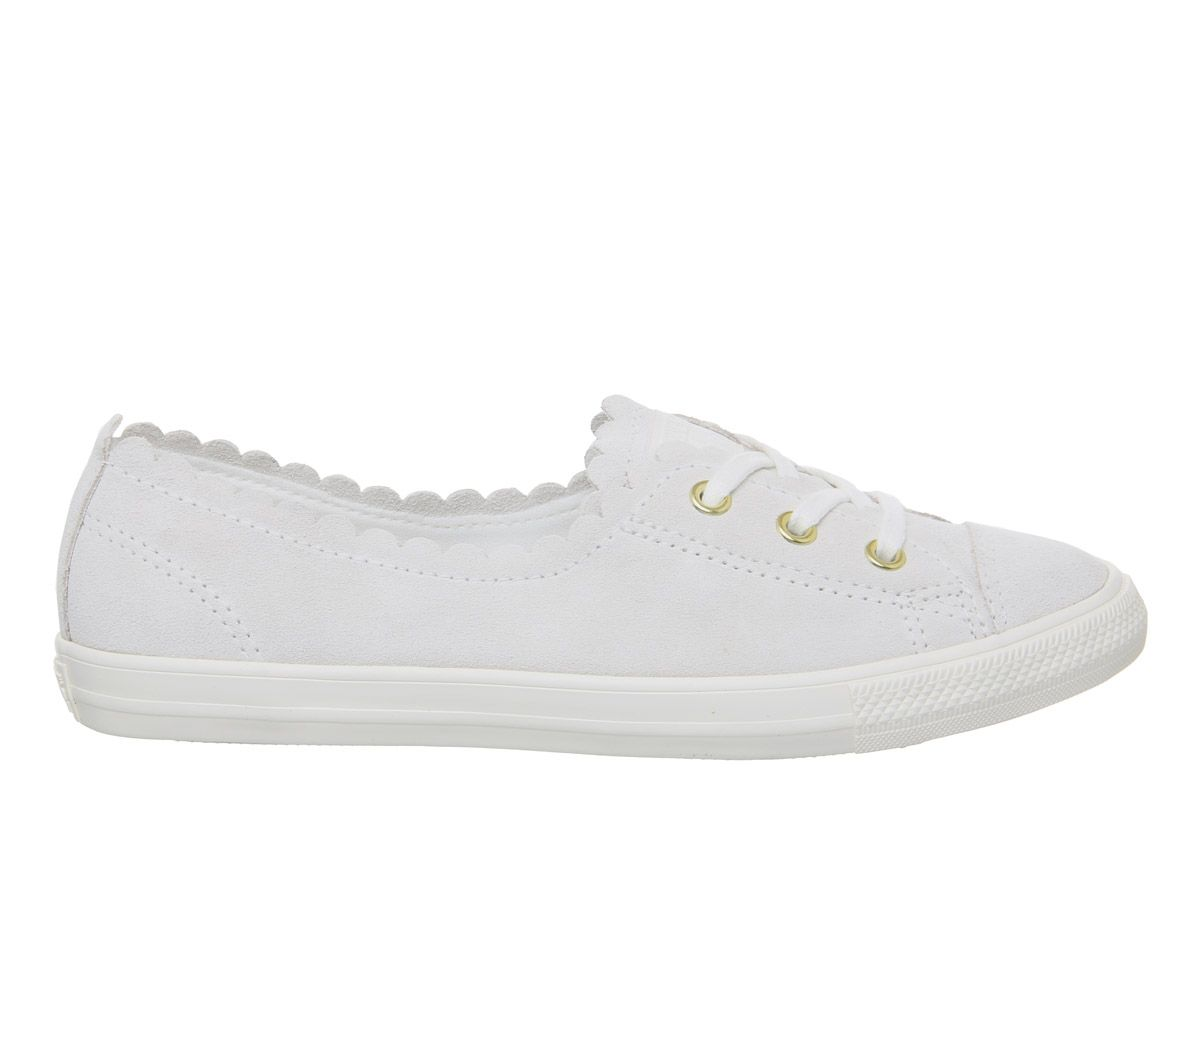 11f97d2b7d2e Sentinel Womens Converse Ctas Ballet Lace Trainers Off White Frill Trainers  Shoes. Sentinel Thumbnail 5